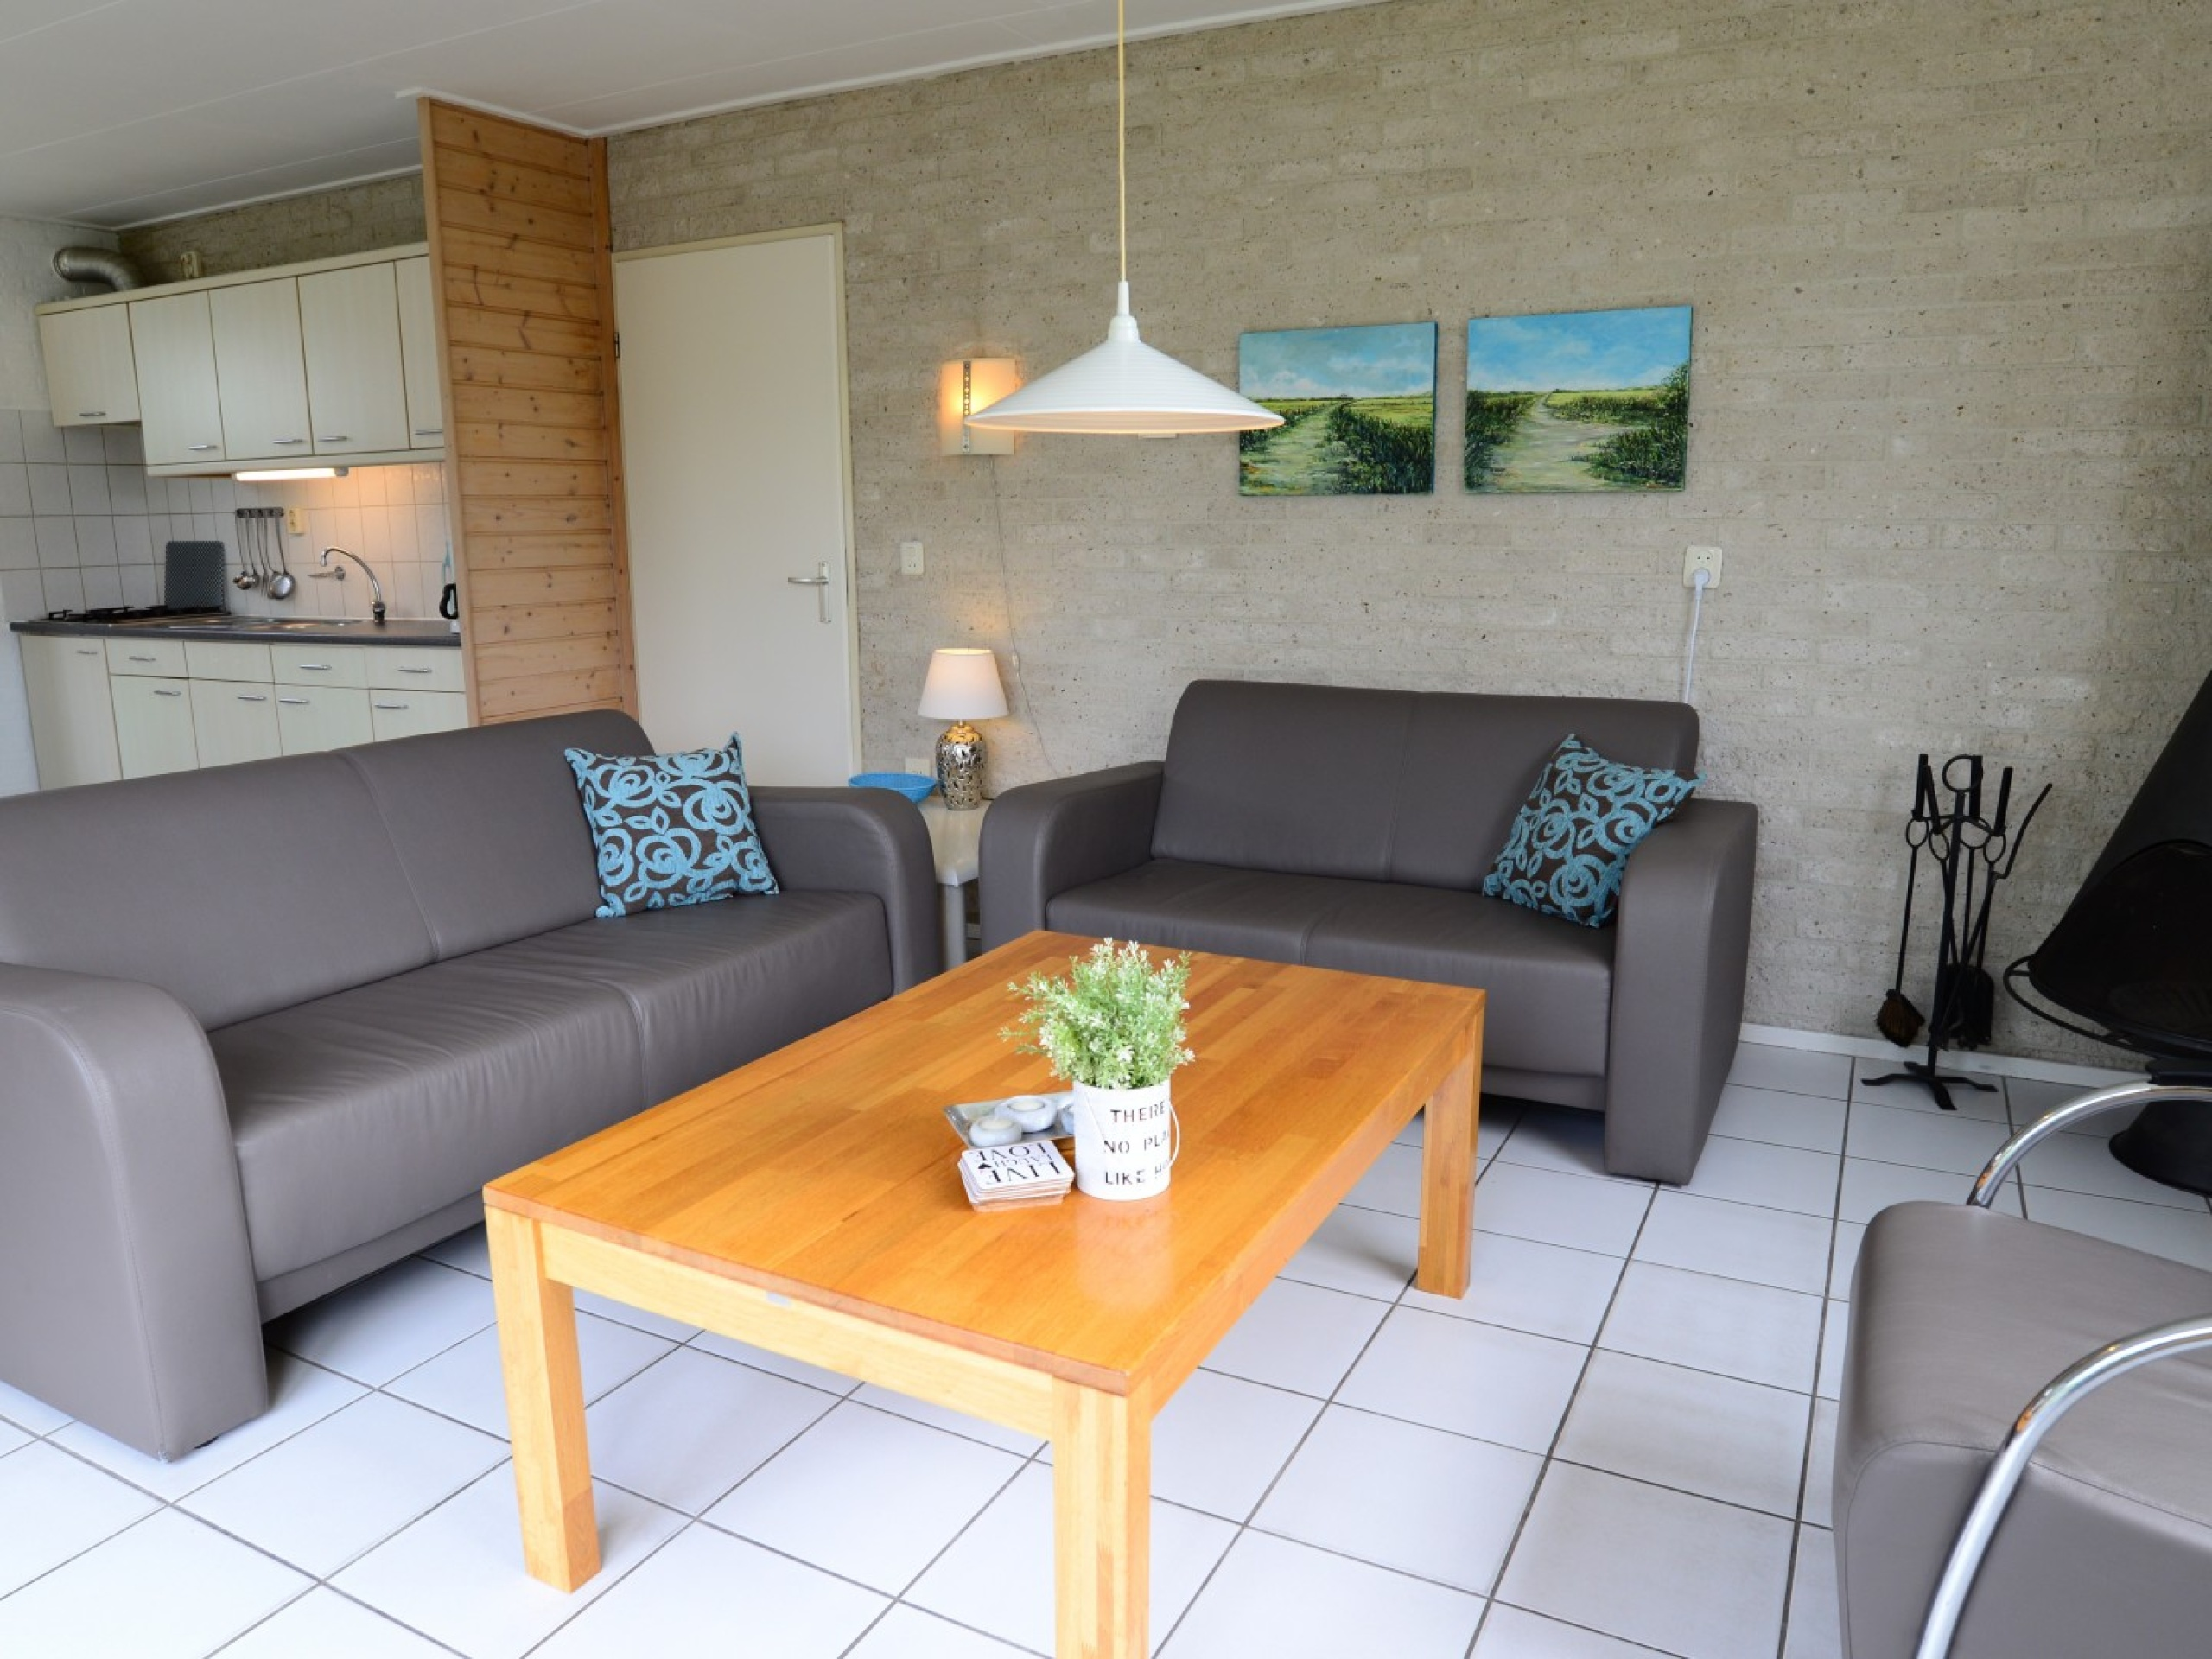 Detached holiday home with large garden in De Koog within walking distance of the sea and beach